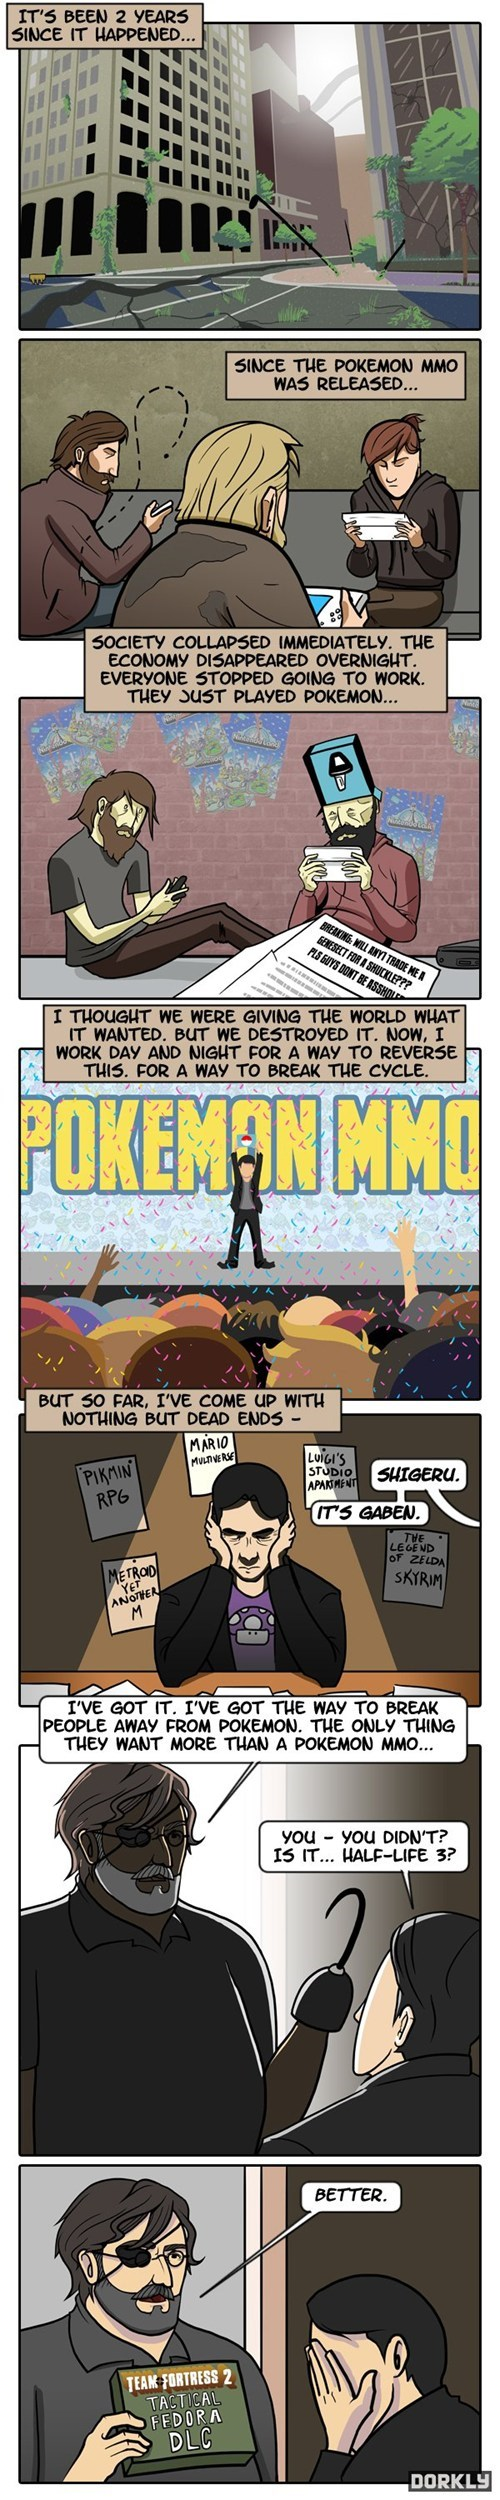 Why Nintendo Will Never Make a Pokemon MMO